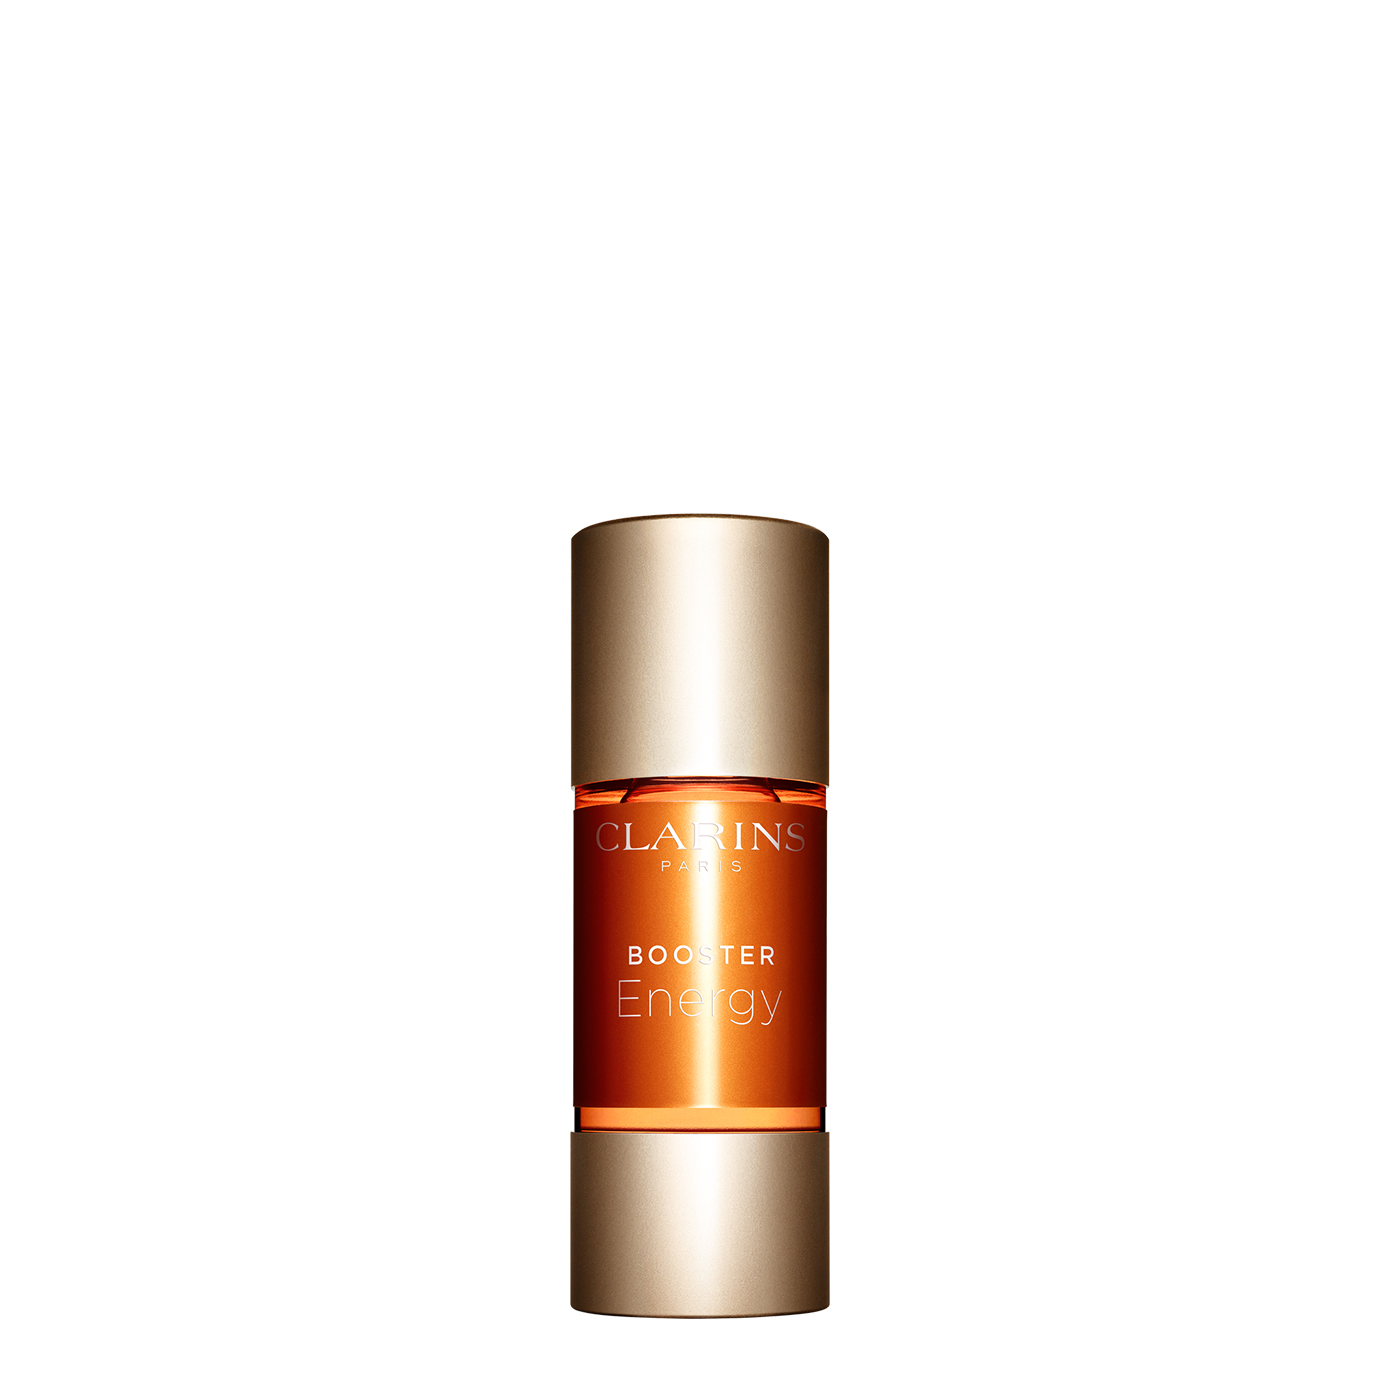 Clarins-BOOSTER-energy-77721.jpg